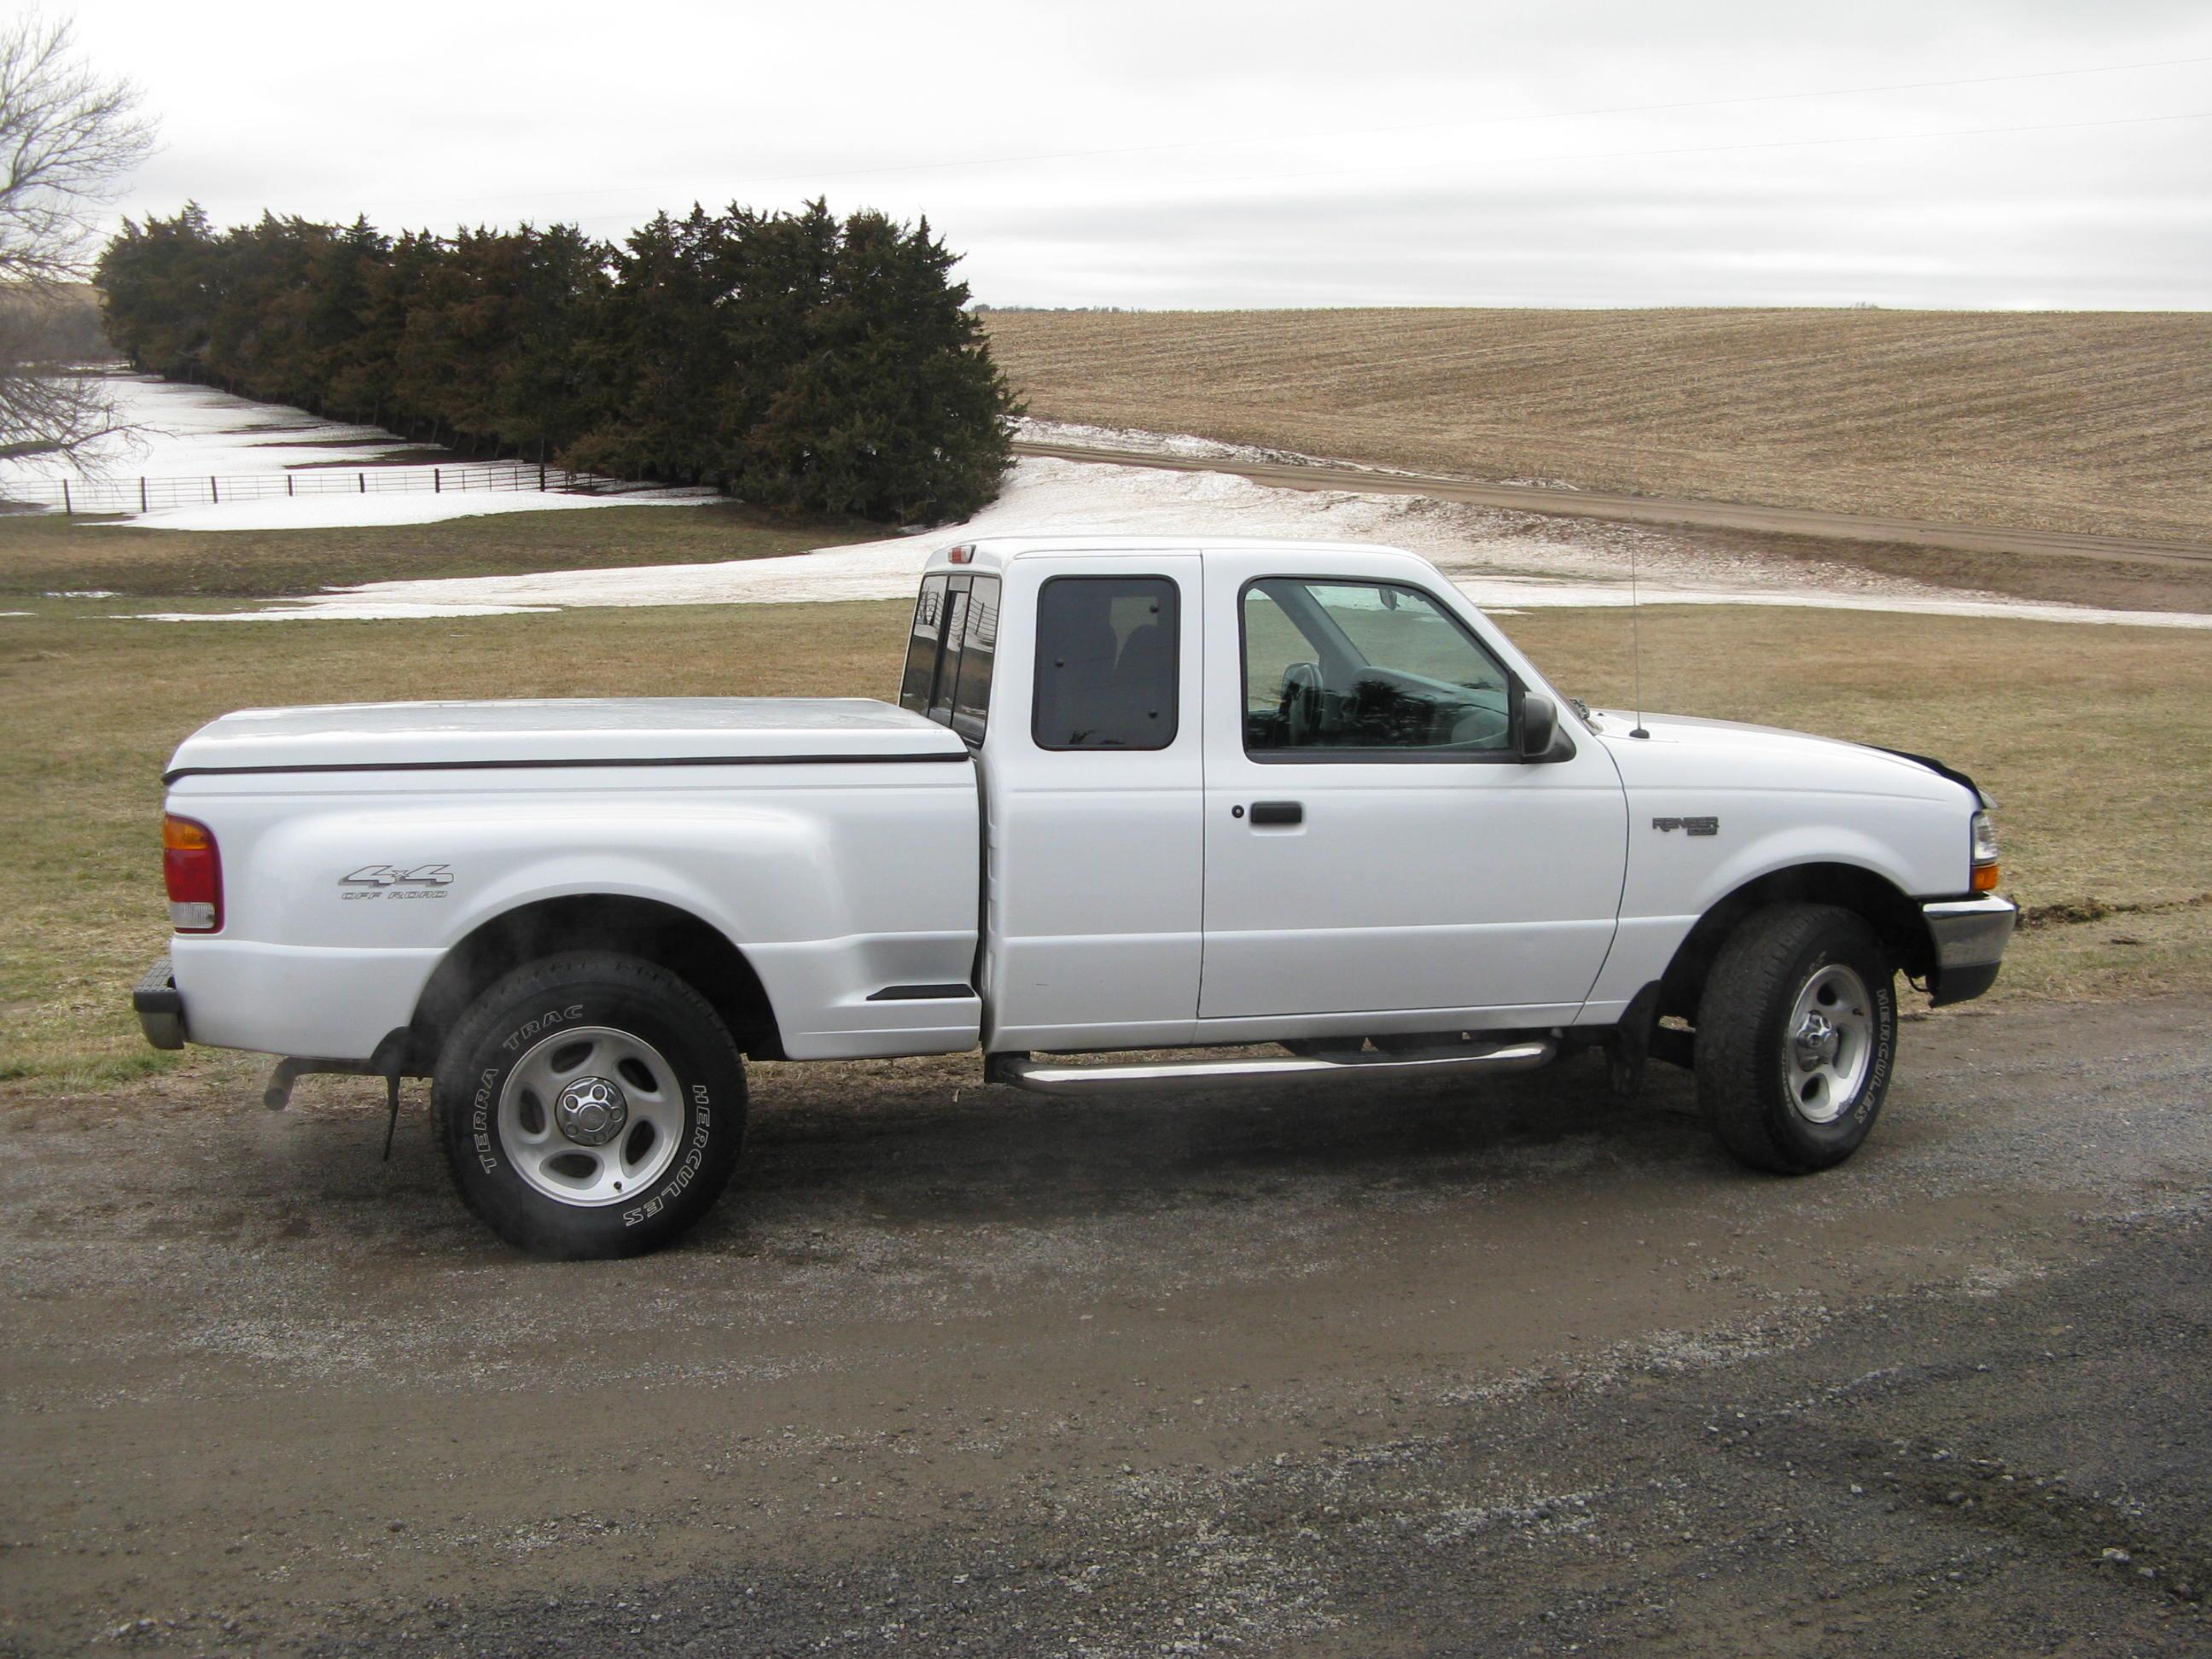 Devils2013 1999 ford ranger super cab 38423770001 original